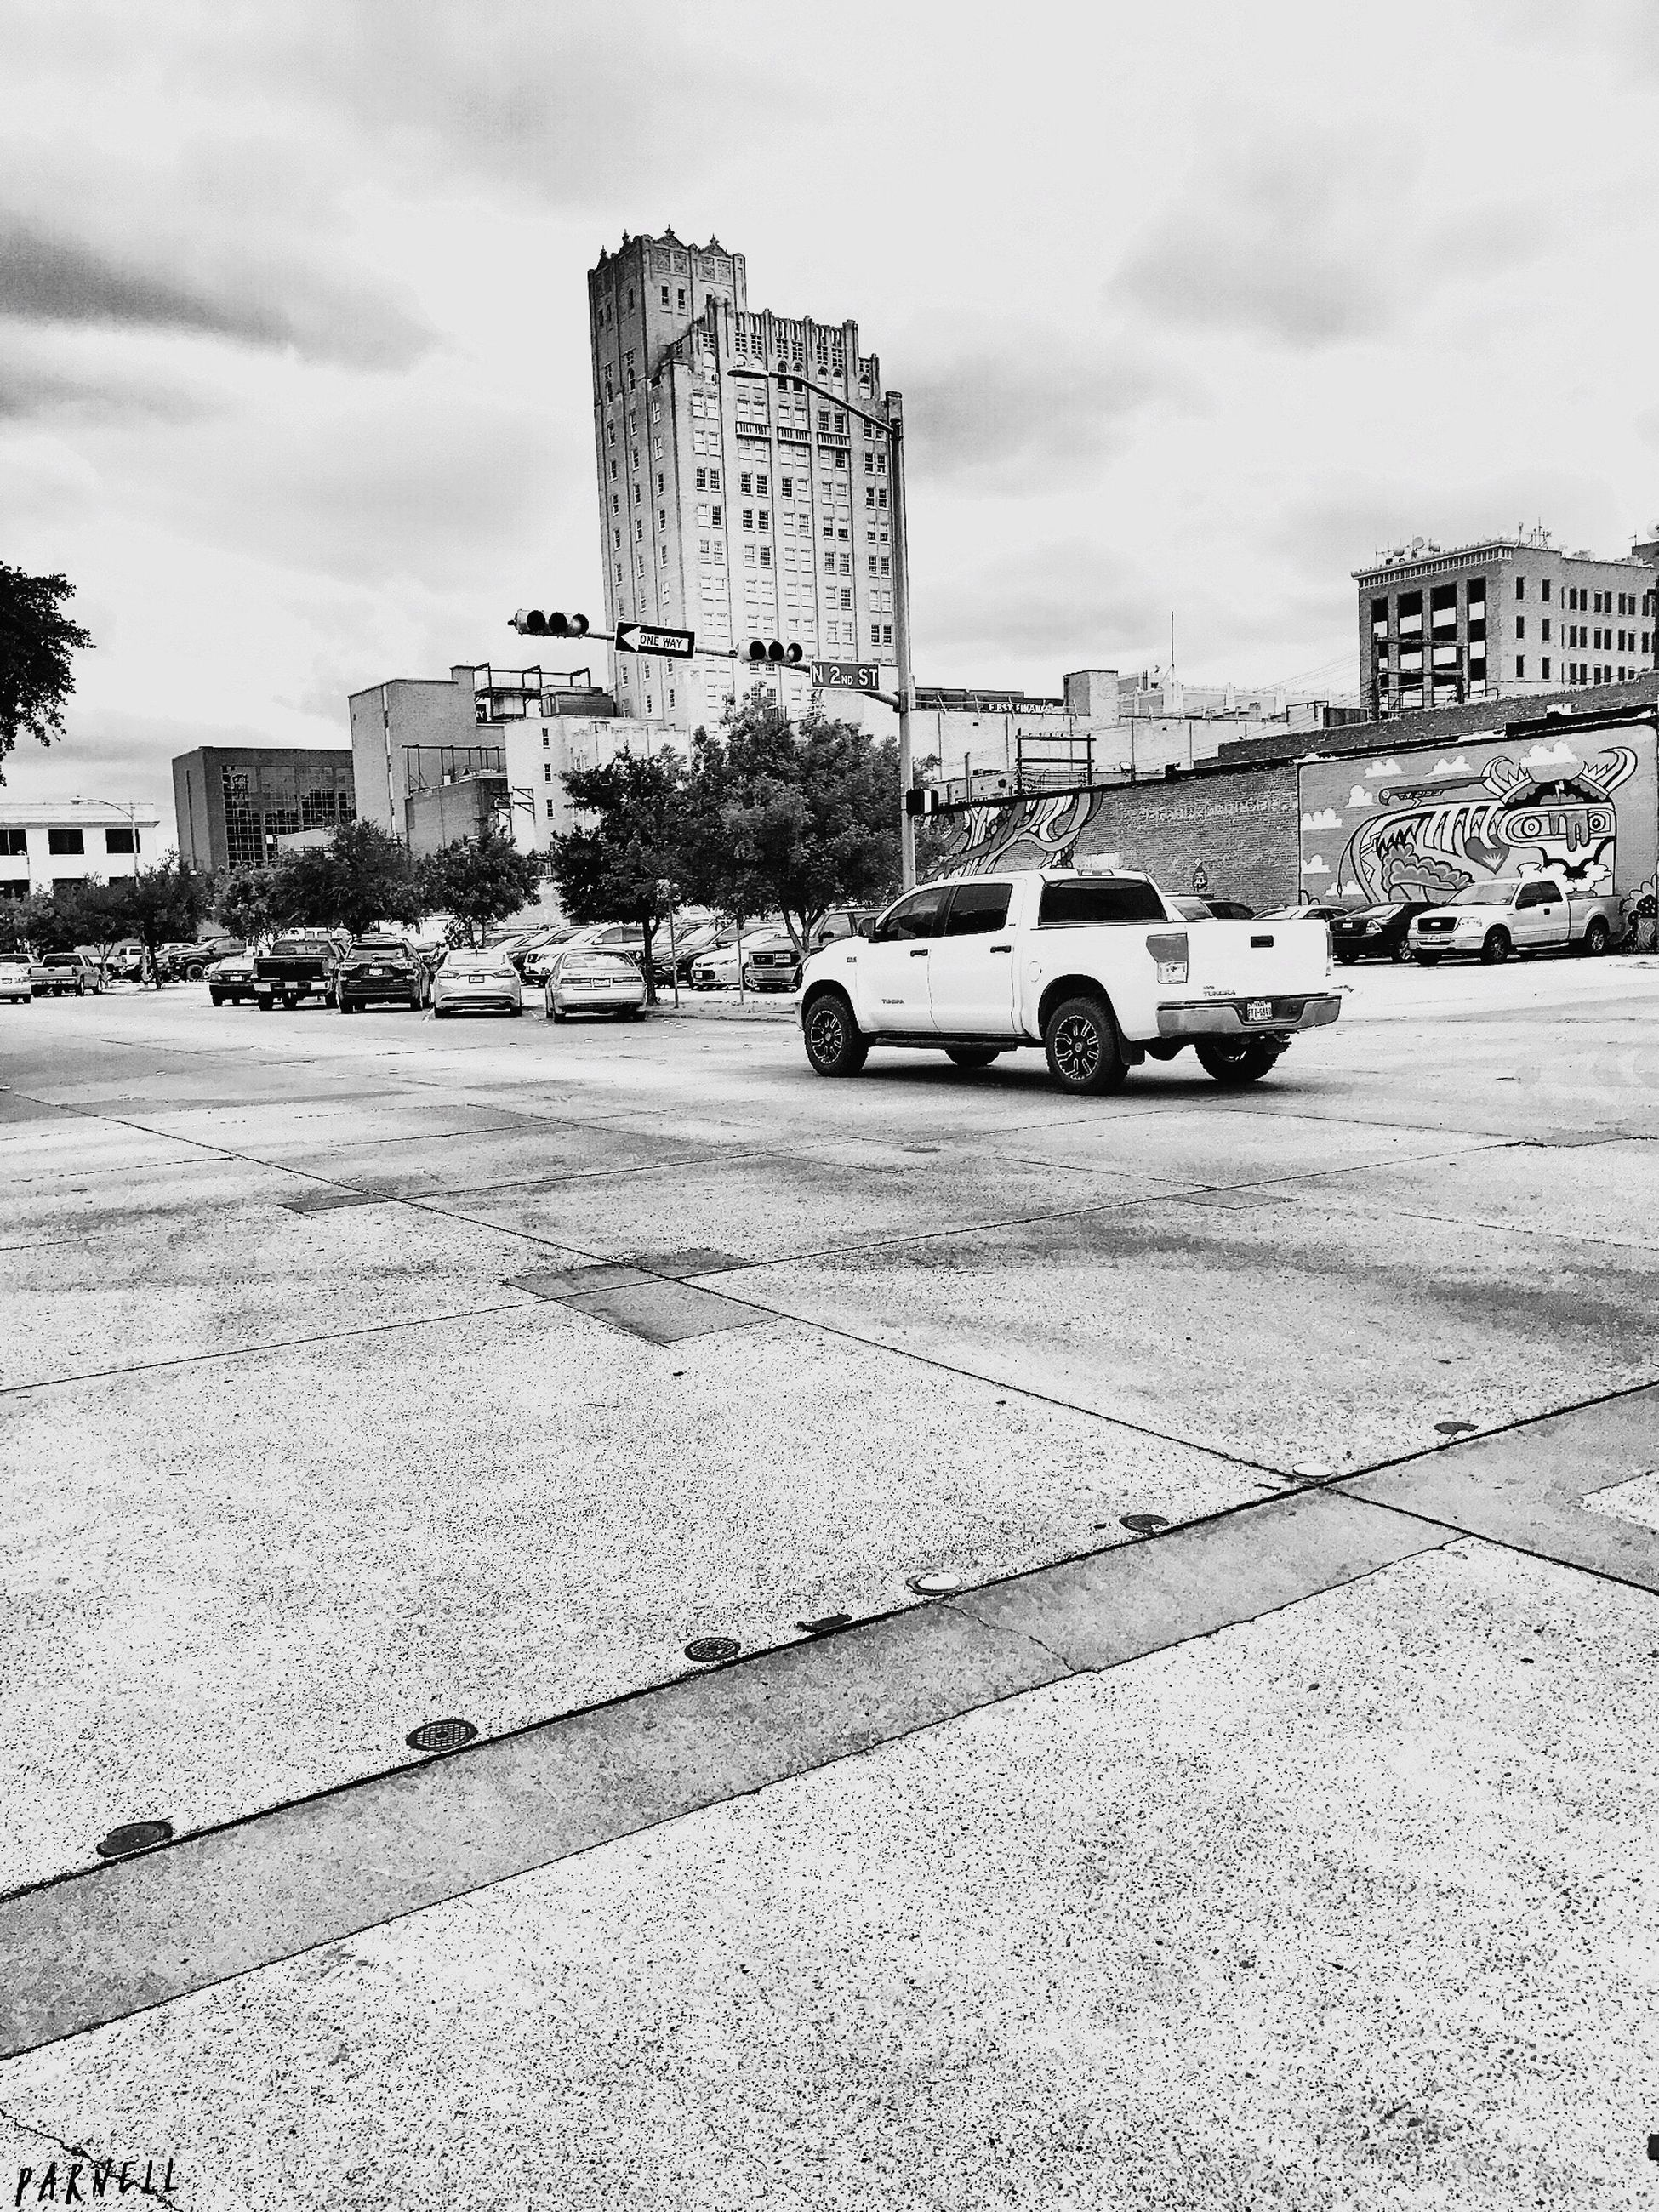 car, architecture, built structure, transportation, building exterior, land vehicle, sky, mode of transport, city, road, cloud - sky, outdoors, day, no people, skyscraper